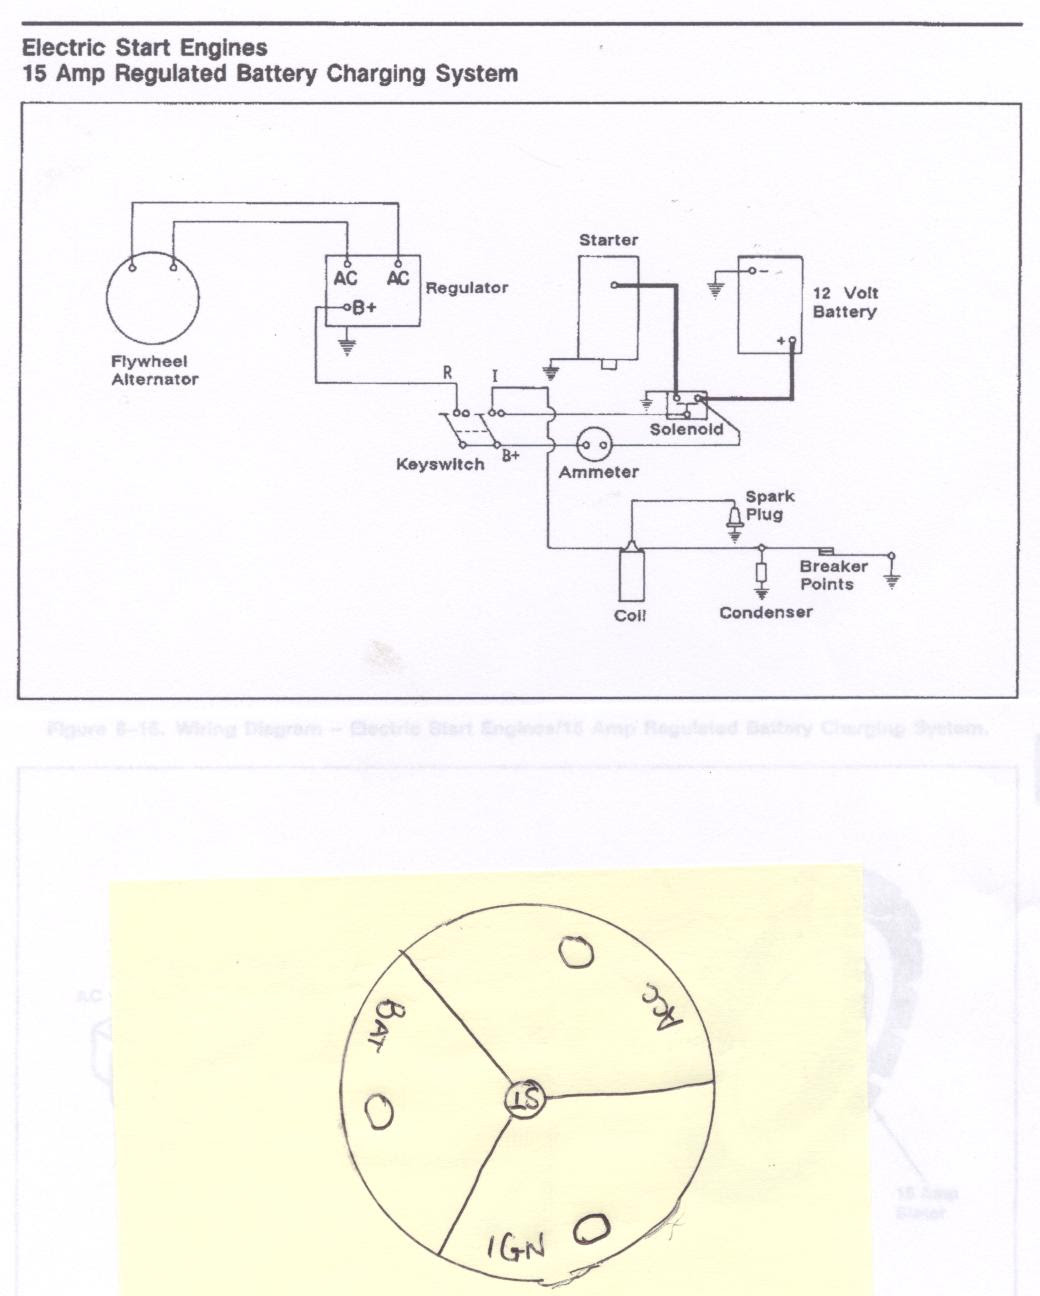 1964 ford 2000 tractor wiring diagram 35 ford 2000 tractor ignition switch wiring diagram wiring  35 ford 2000 tractor ignition switch